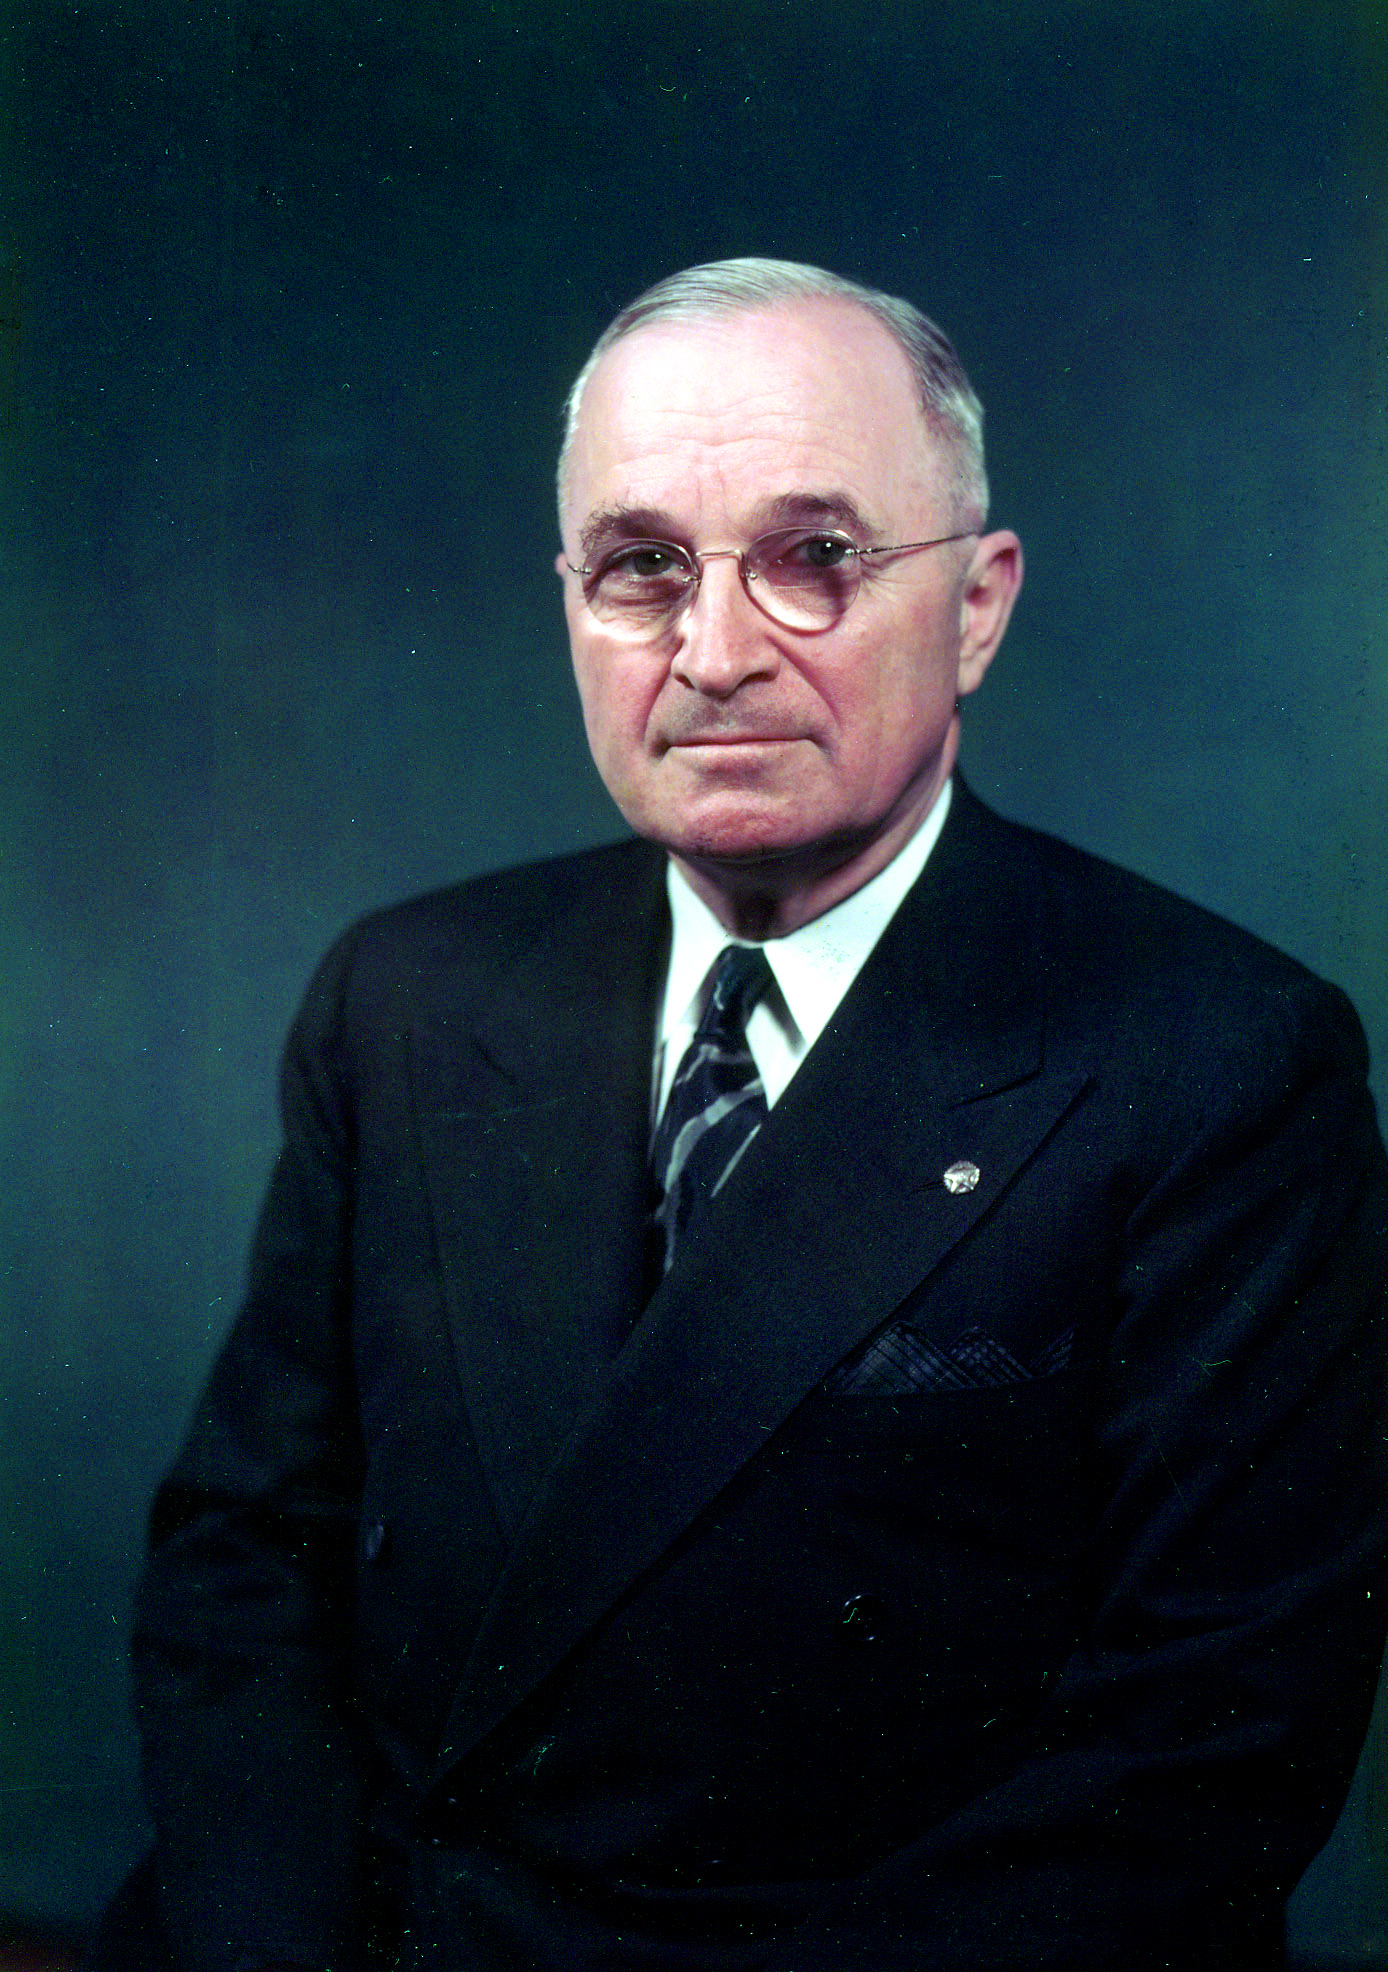 a biography of harry s truman 32nd president of the united states Harry s truman was the thirty-third president of the united states (1945-1953) as vice president, he succeeded franklin d roosevelt, who died less than three months after he began his fourth term.